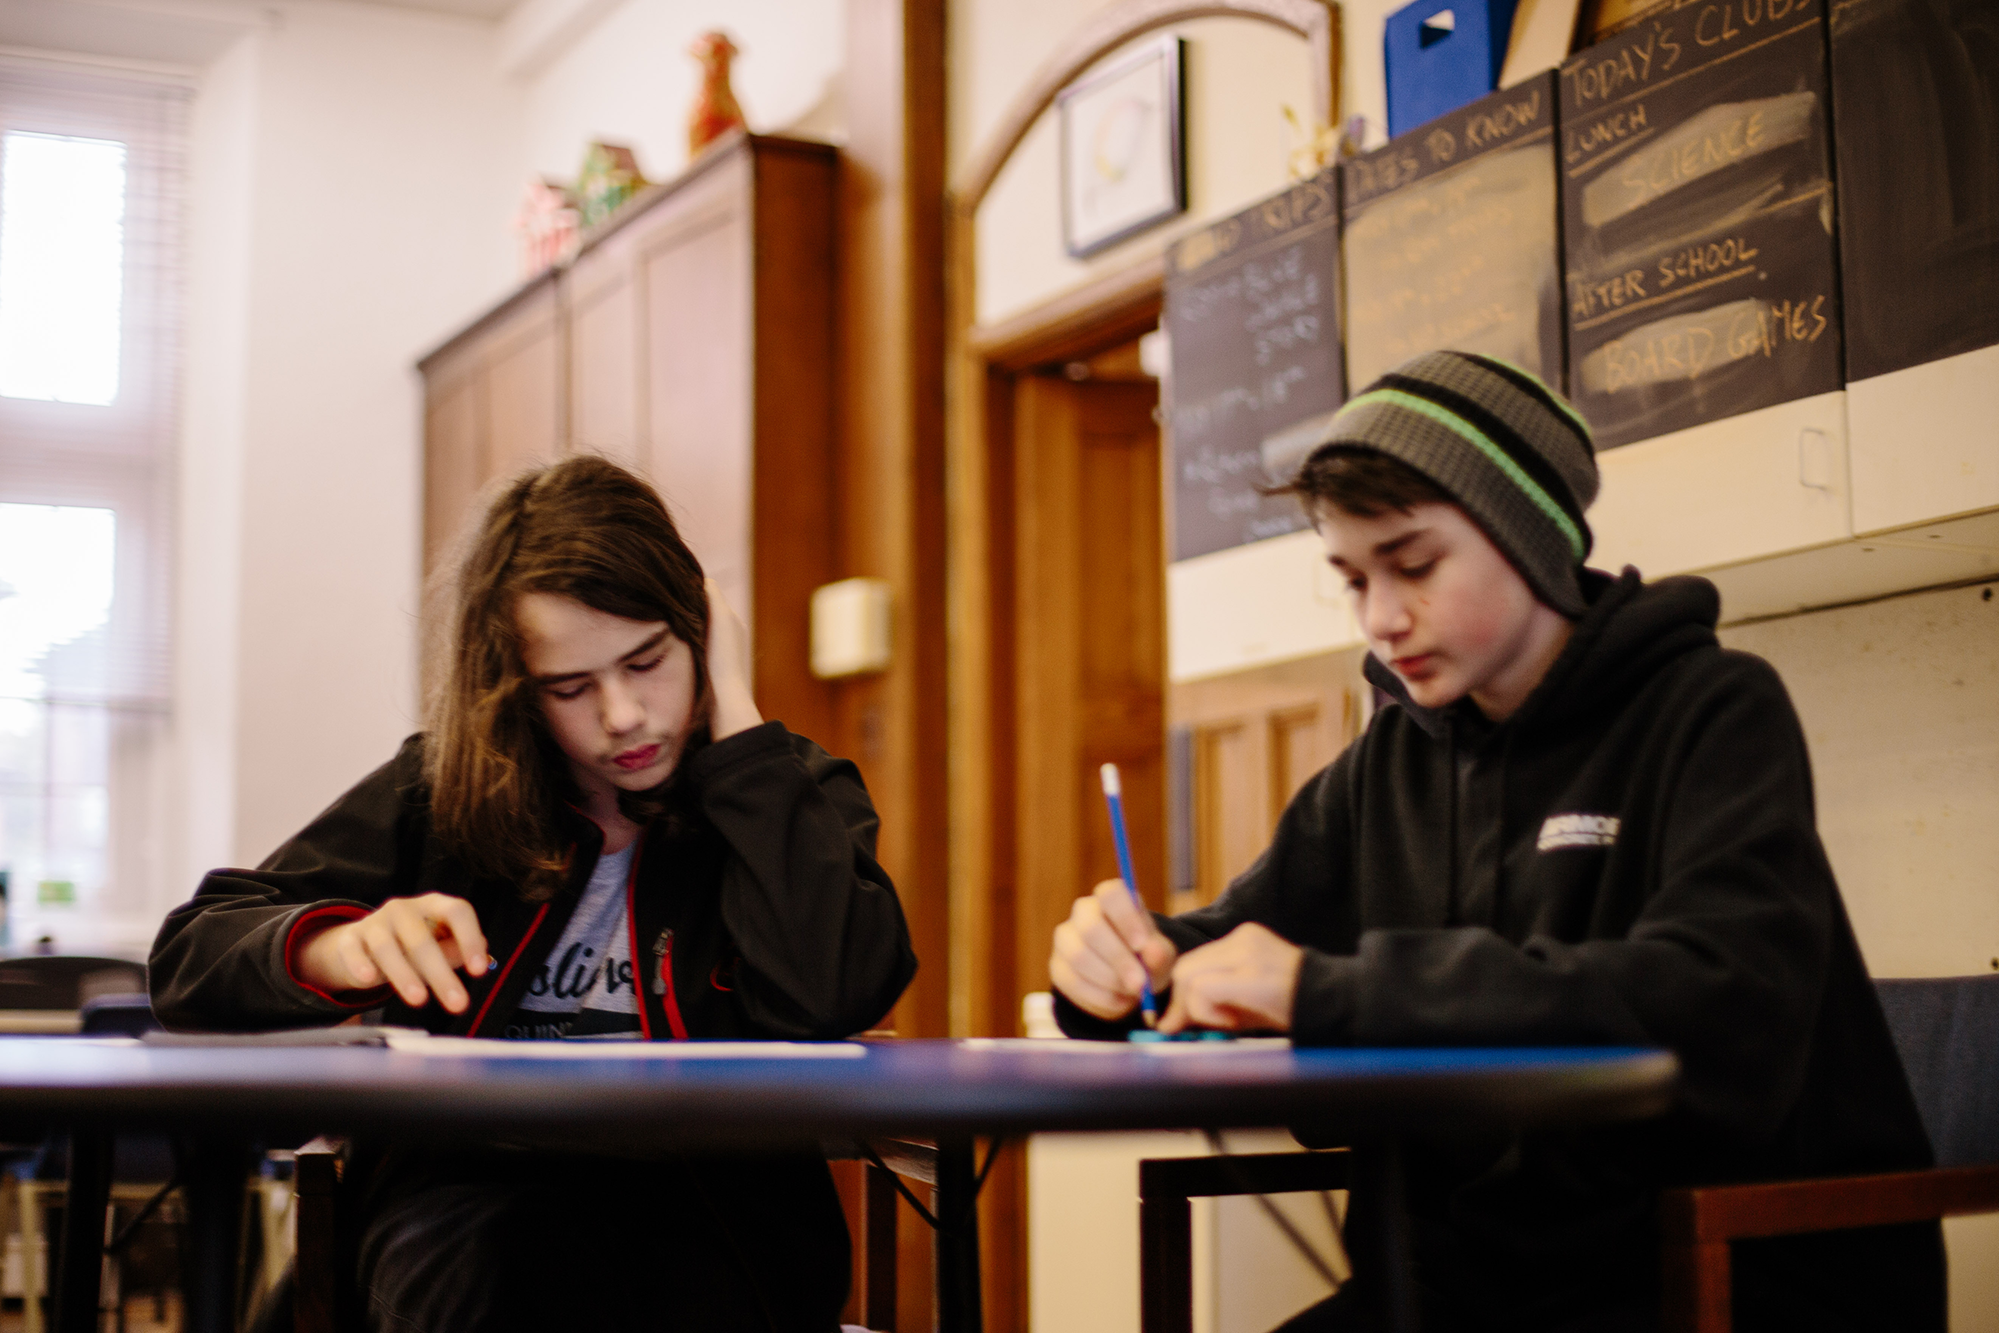 Two students, studying together at a desk